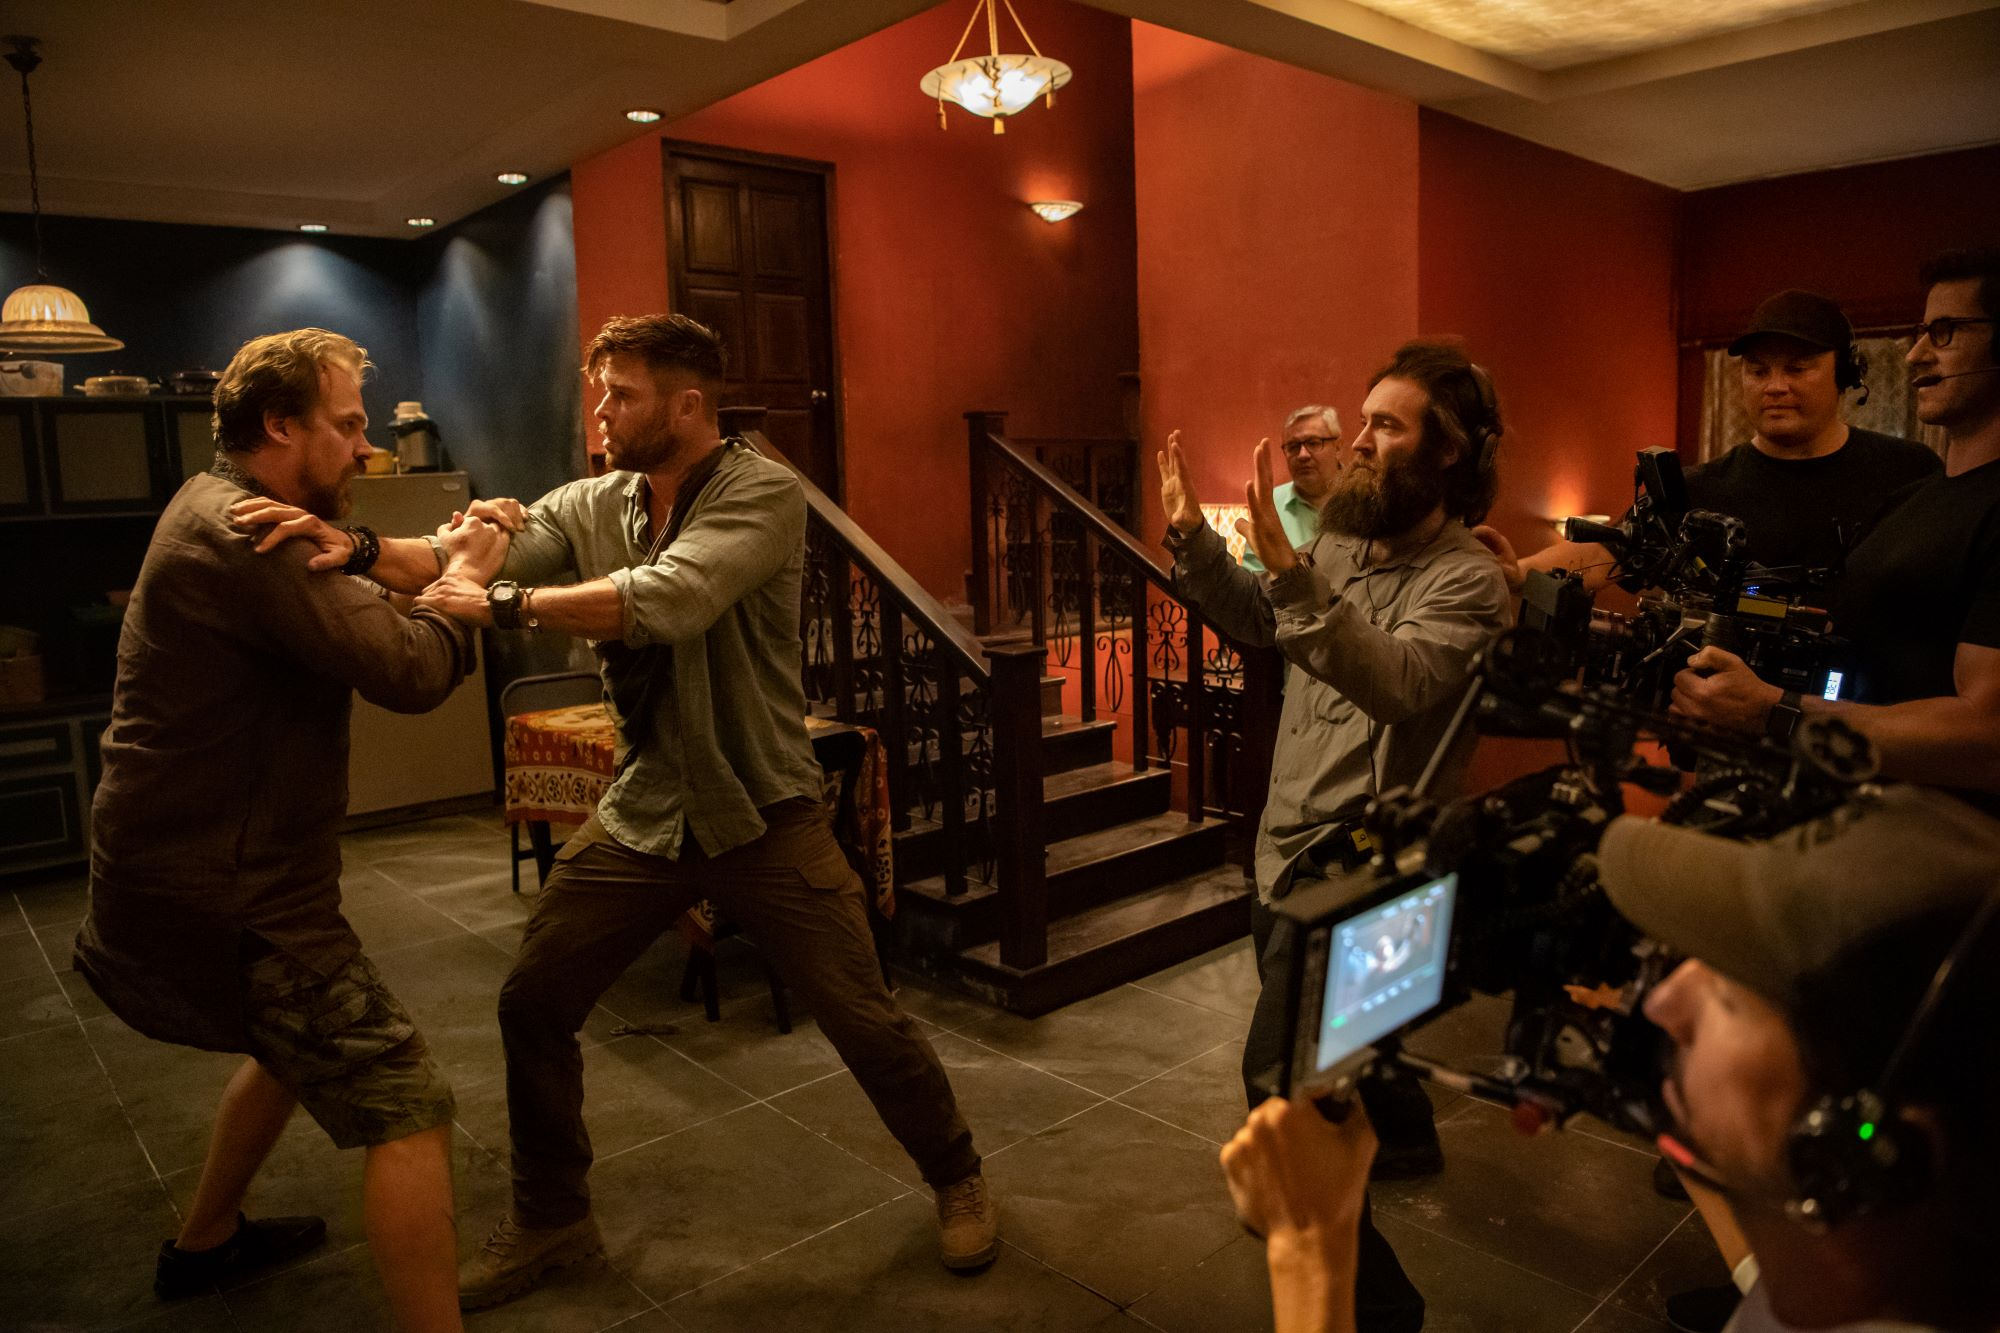 David Harbour, Chris Hemsworth, and Sam Hargraves filming 'Extraction'